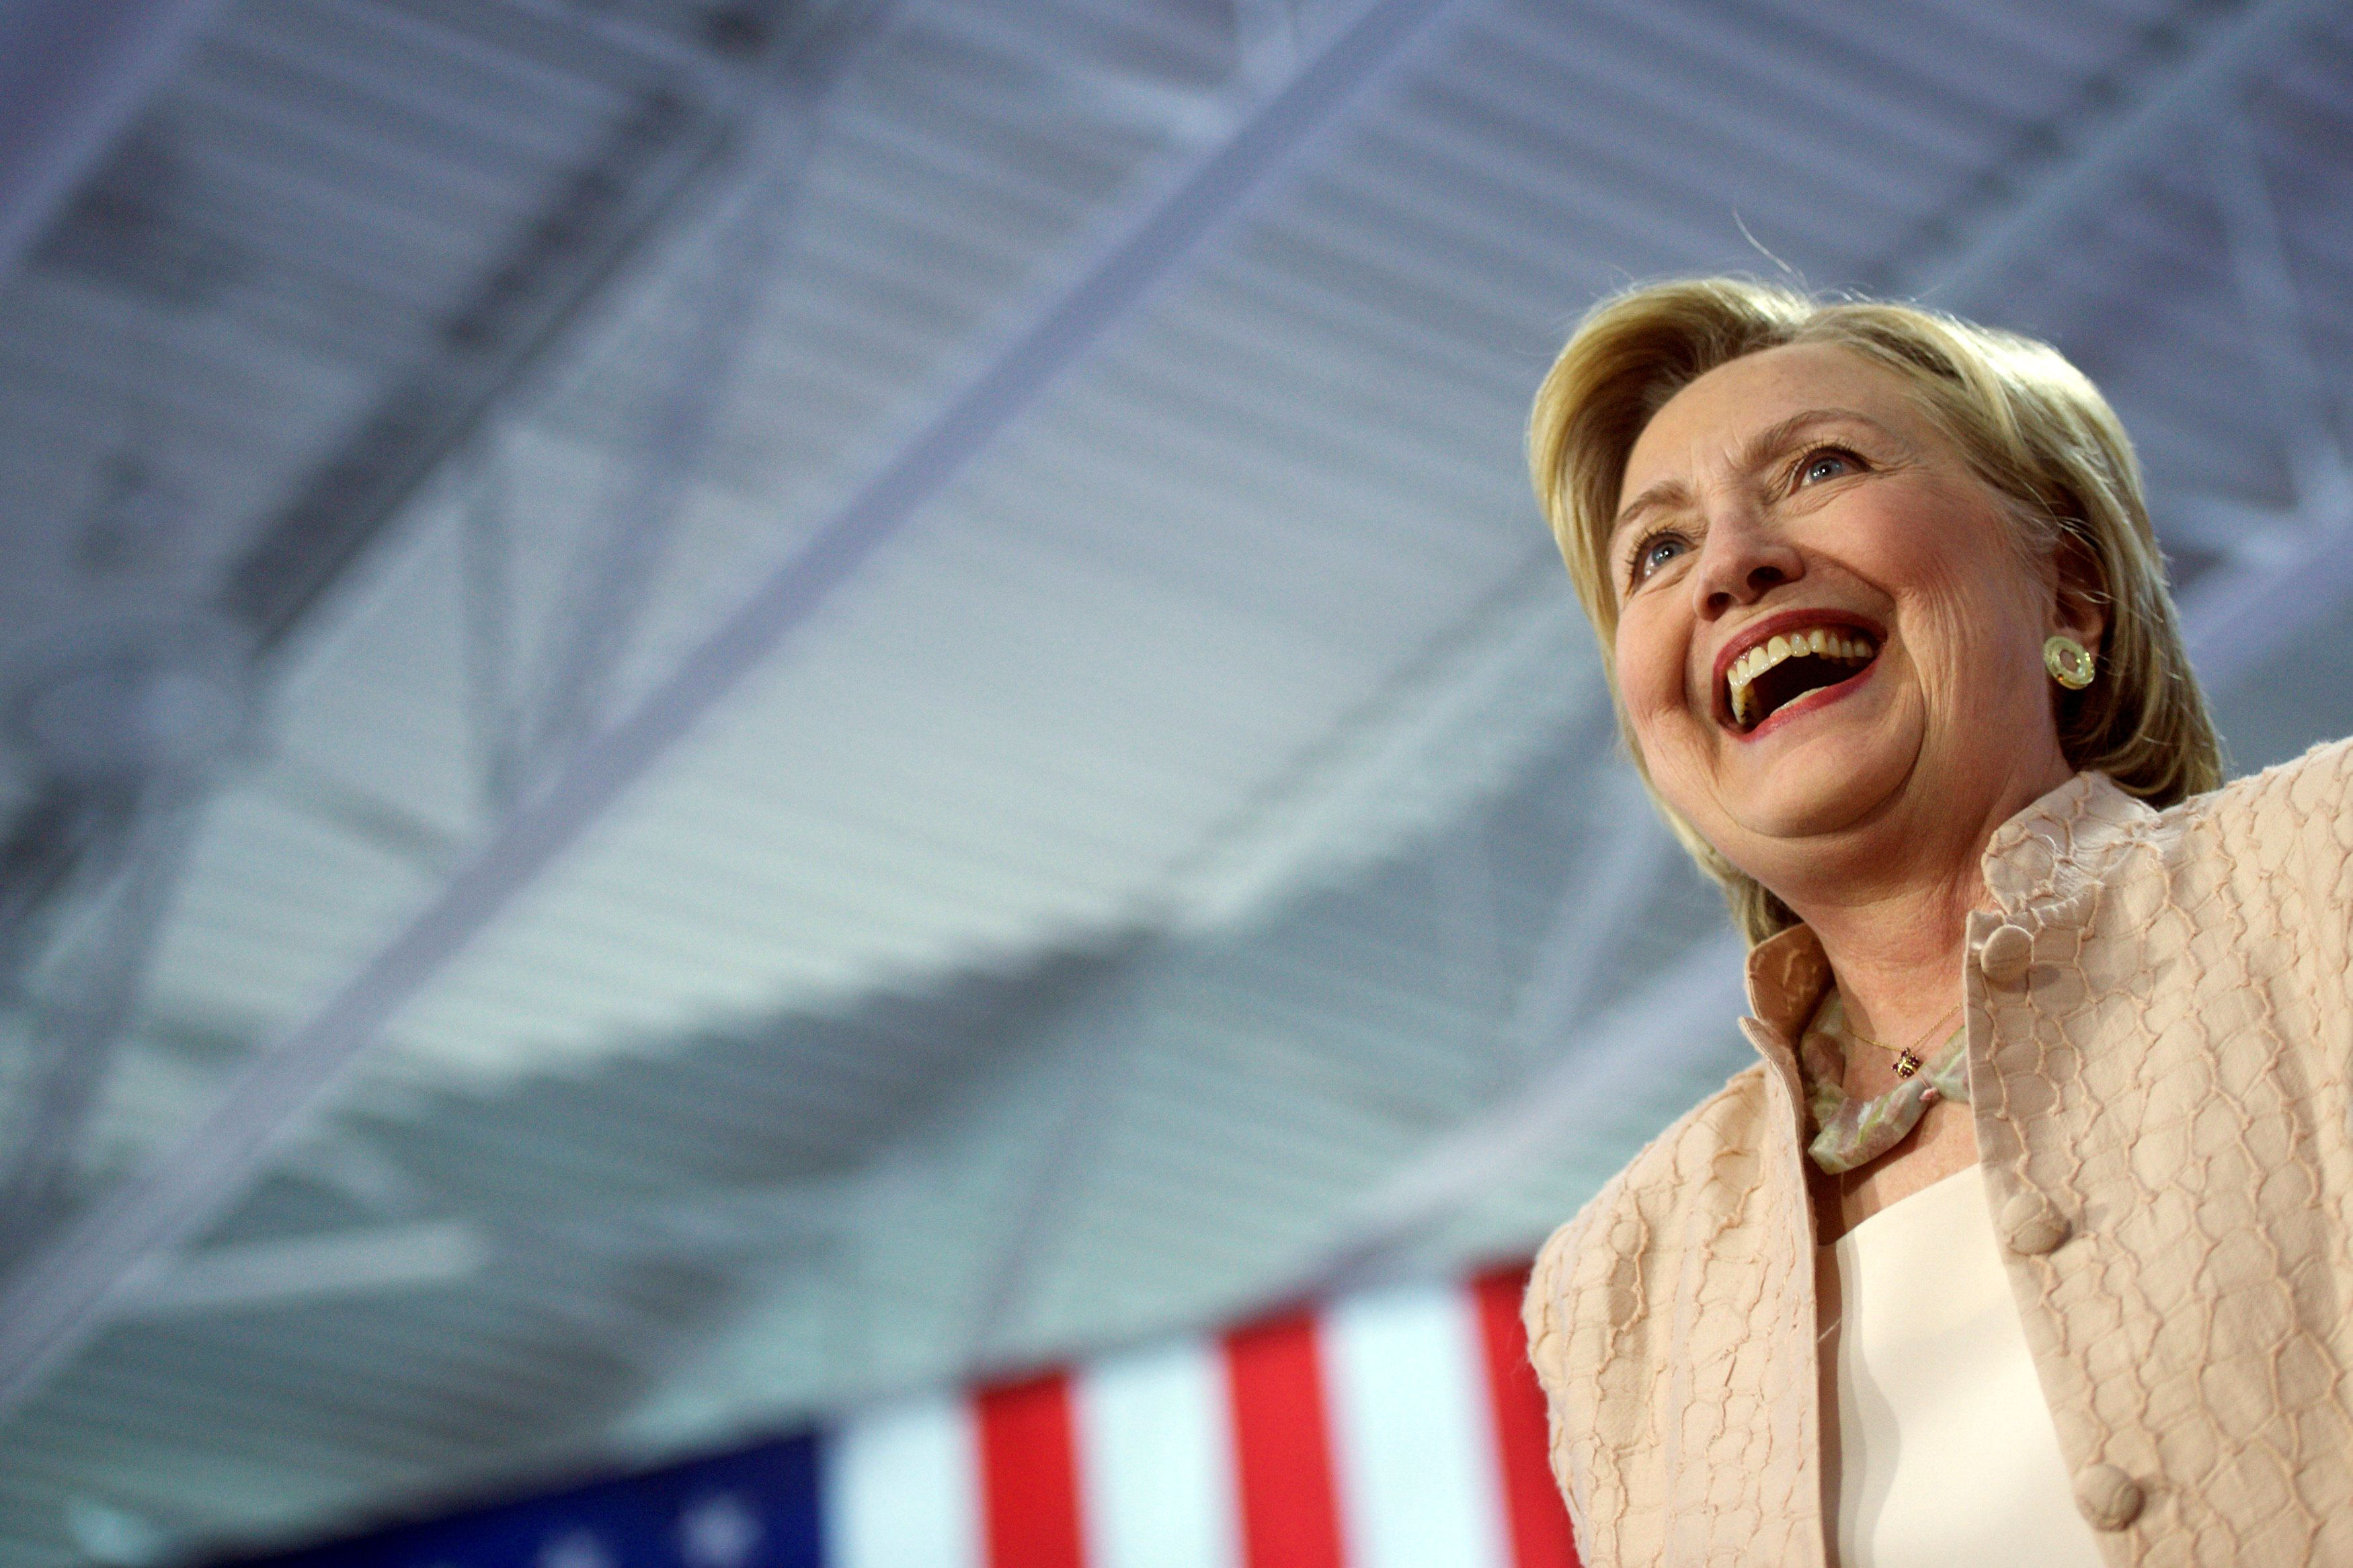 Hillary Clinton Leads Donald Trump By 12 Points In New